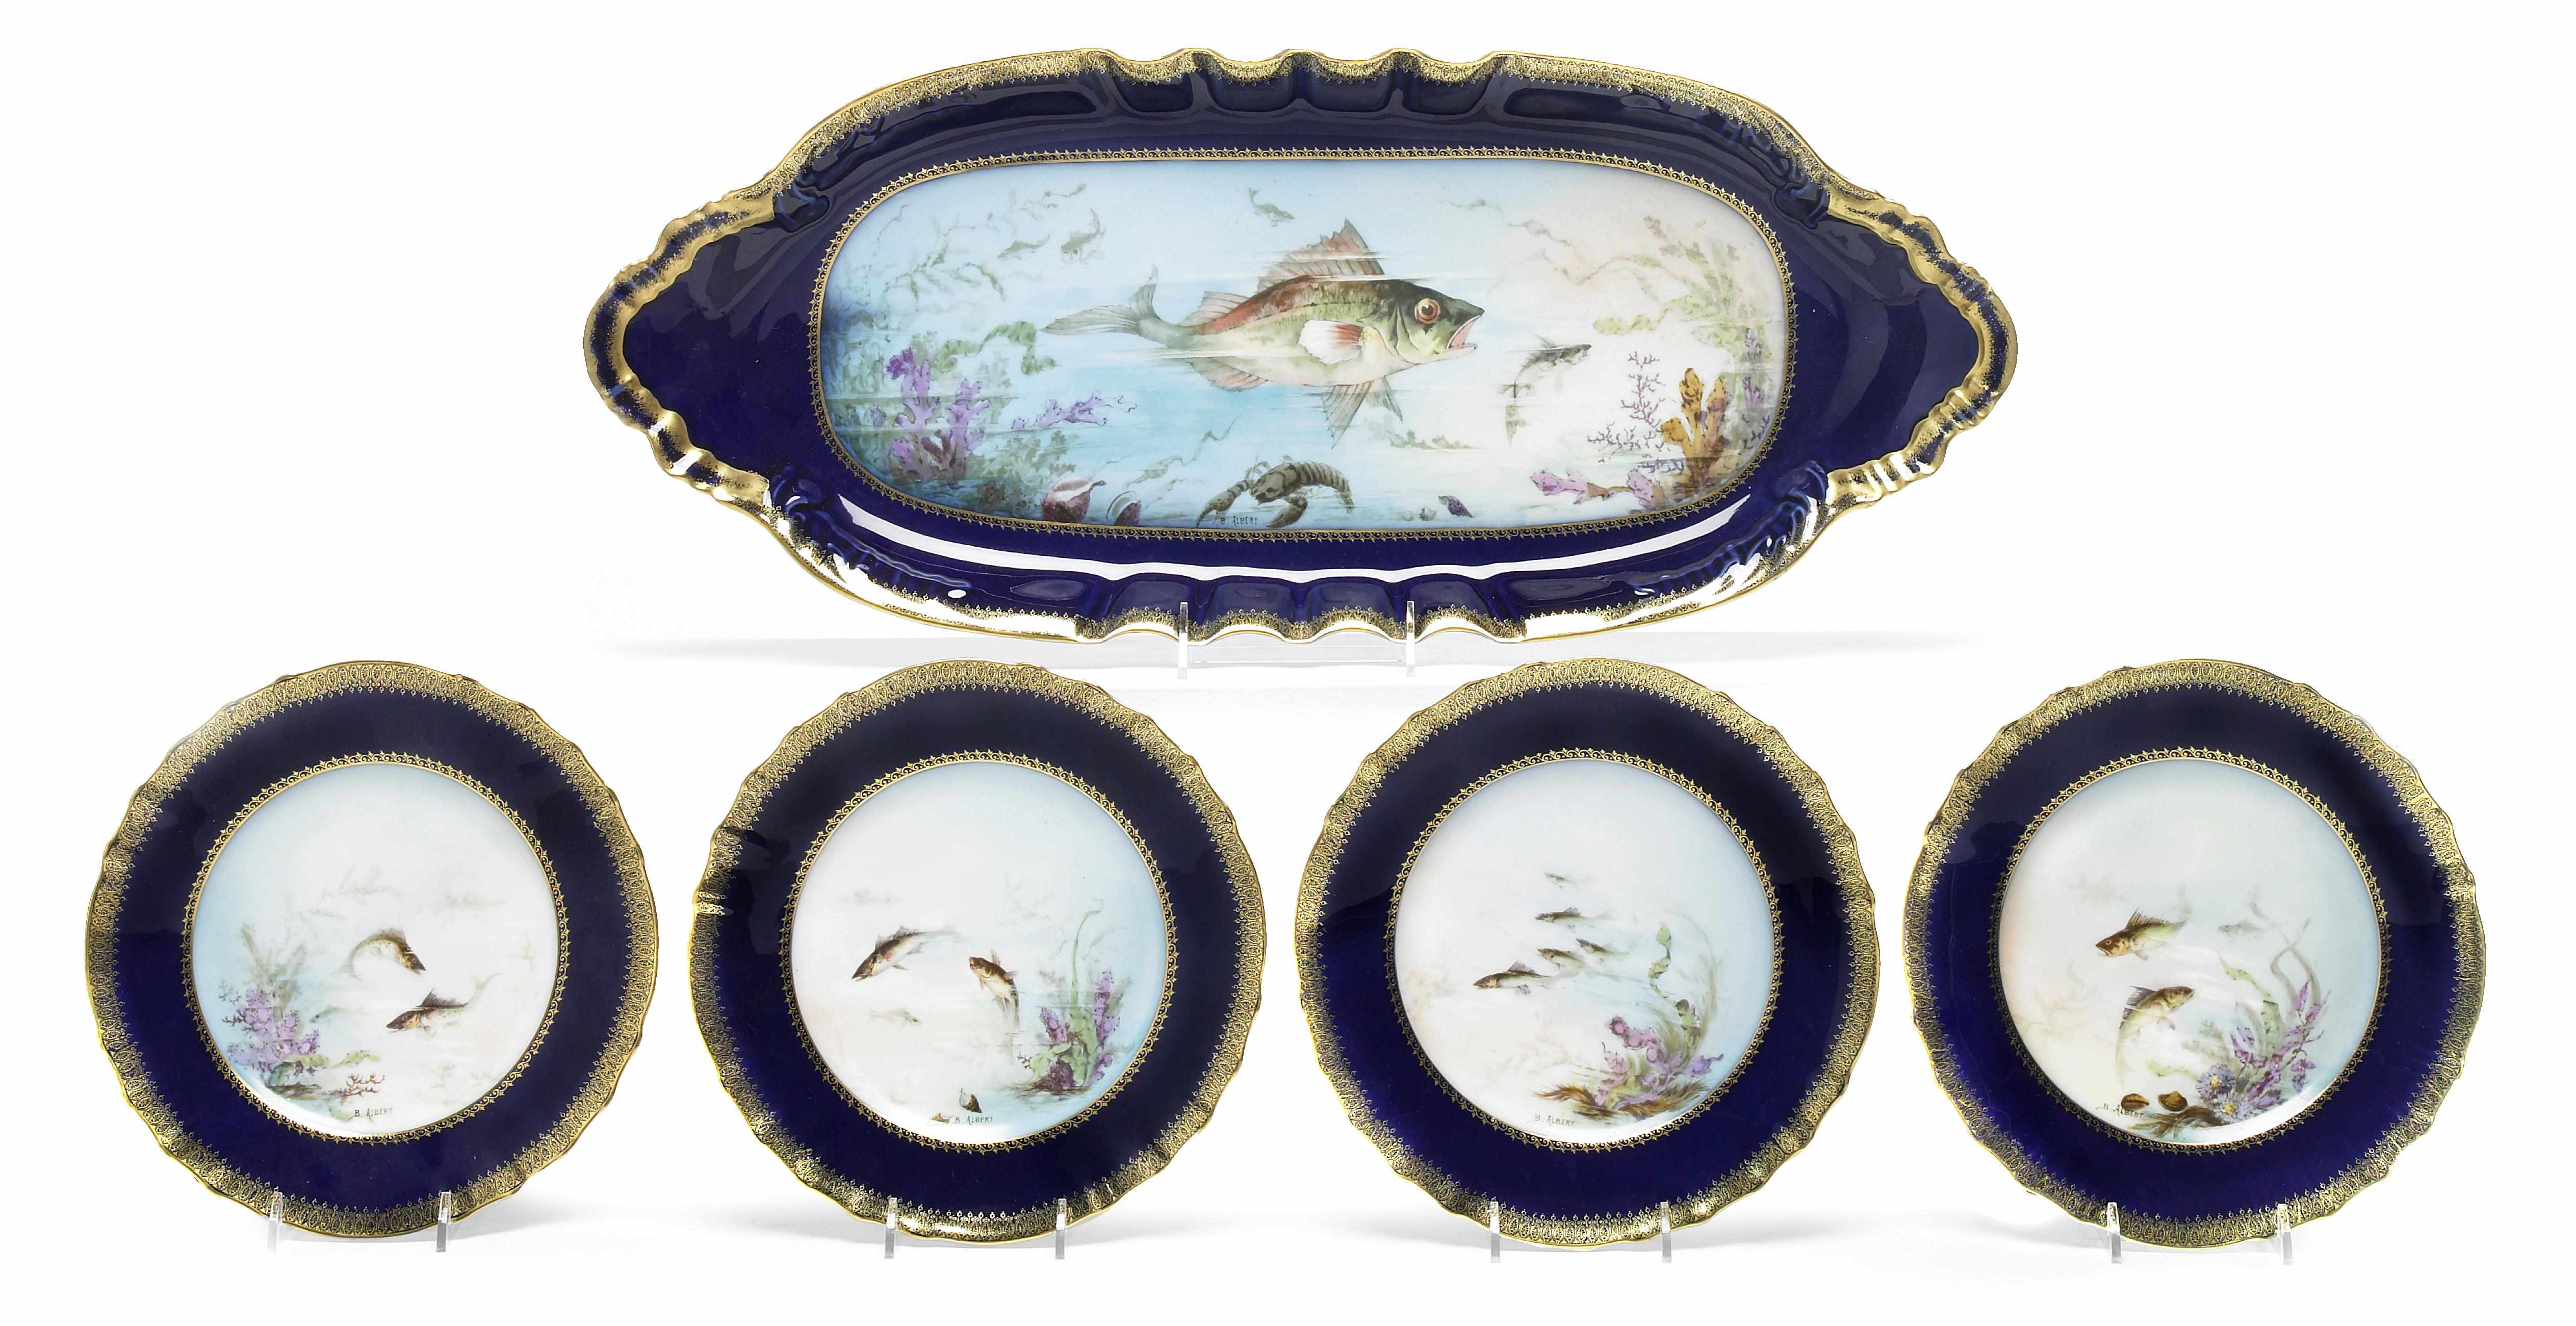 A Haviland Limoges porcelain fish service